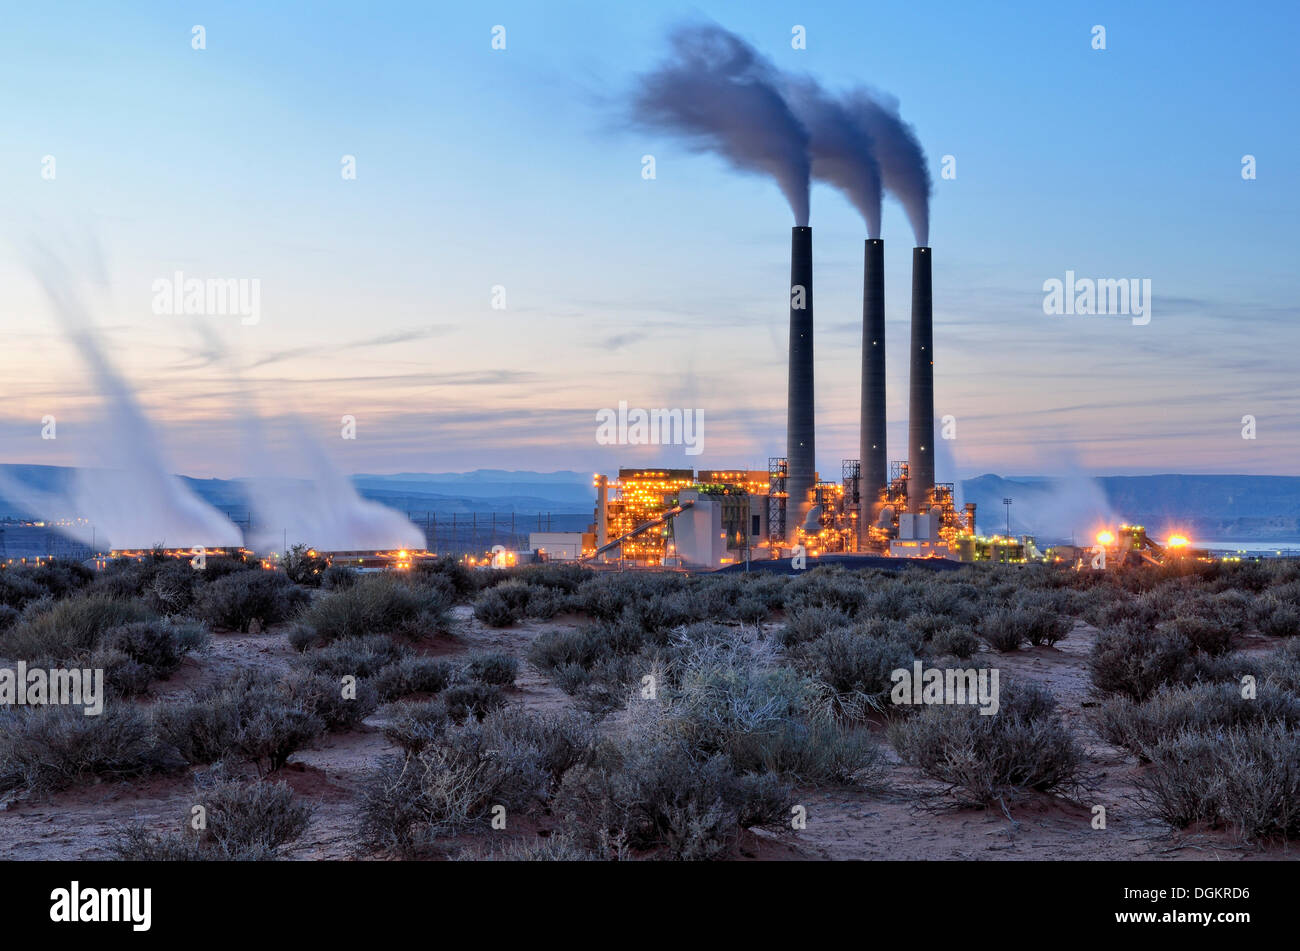 Coal power plant, Navajo Generating Station, in the evening, Navajo Nation Reservation, Page, Arizona, United States Stock Photo